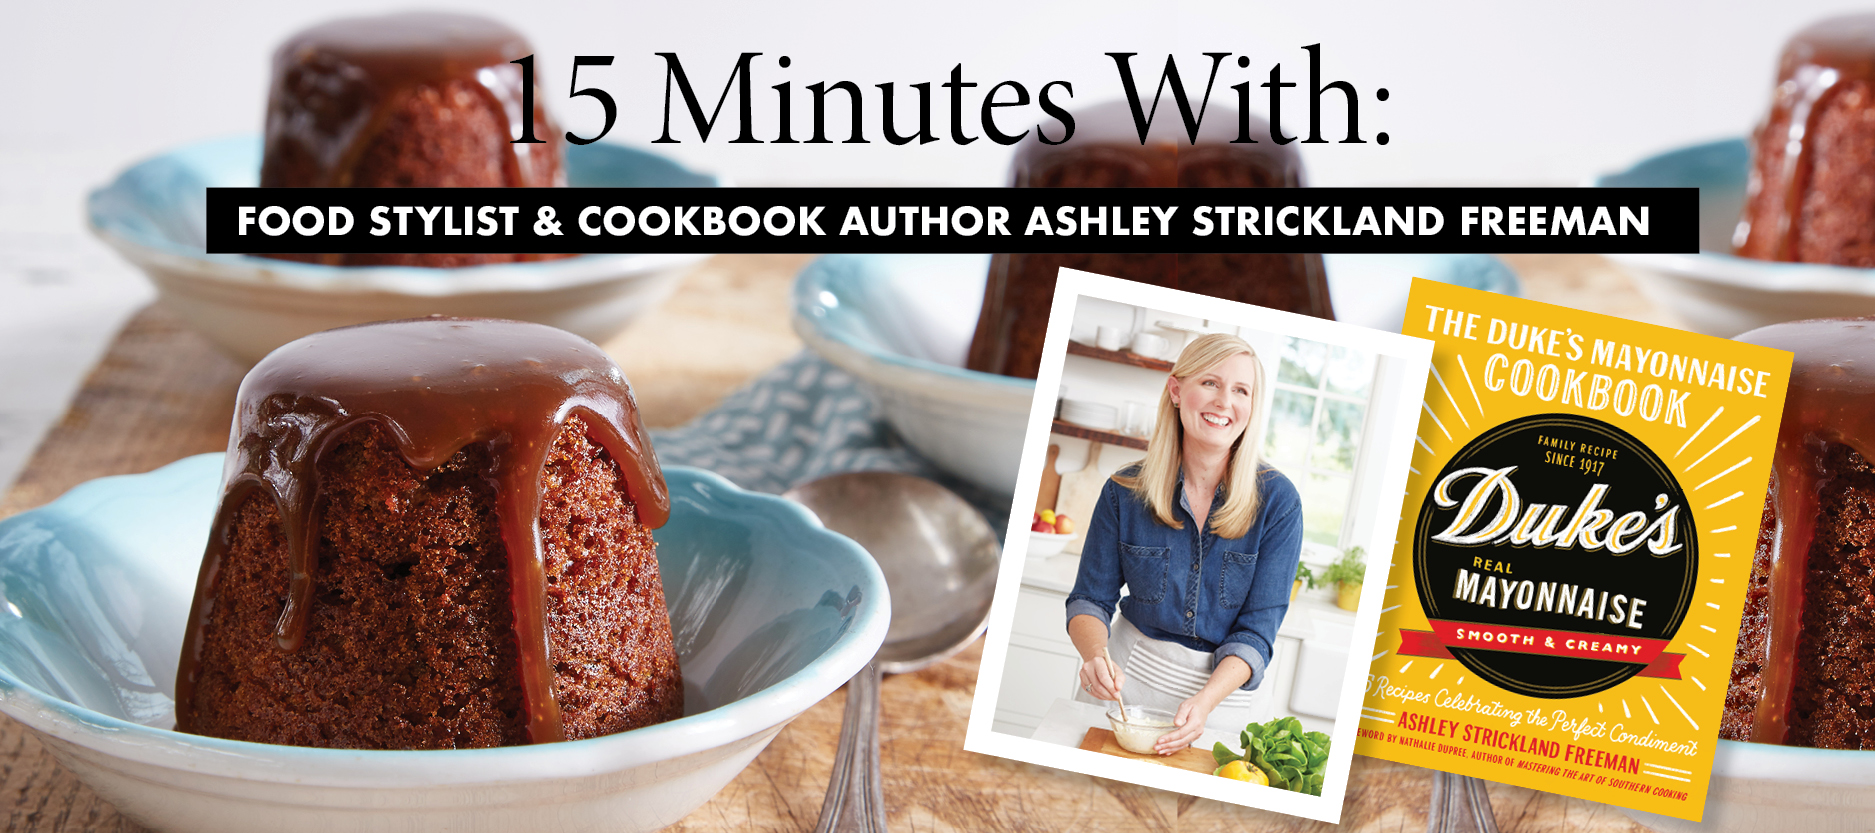 15 Minutes With: Food Stylist & Cookbook Author Ashley Strickland Freeman